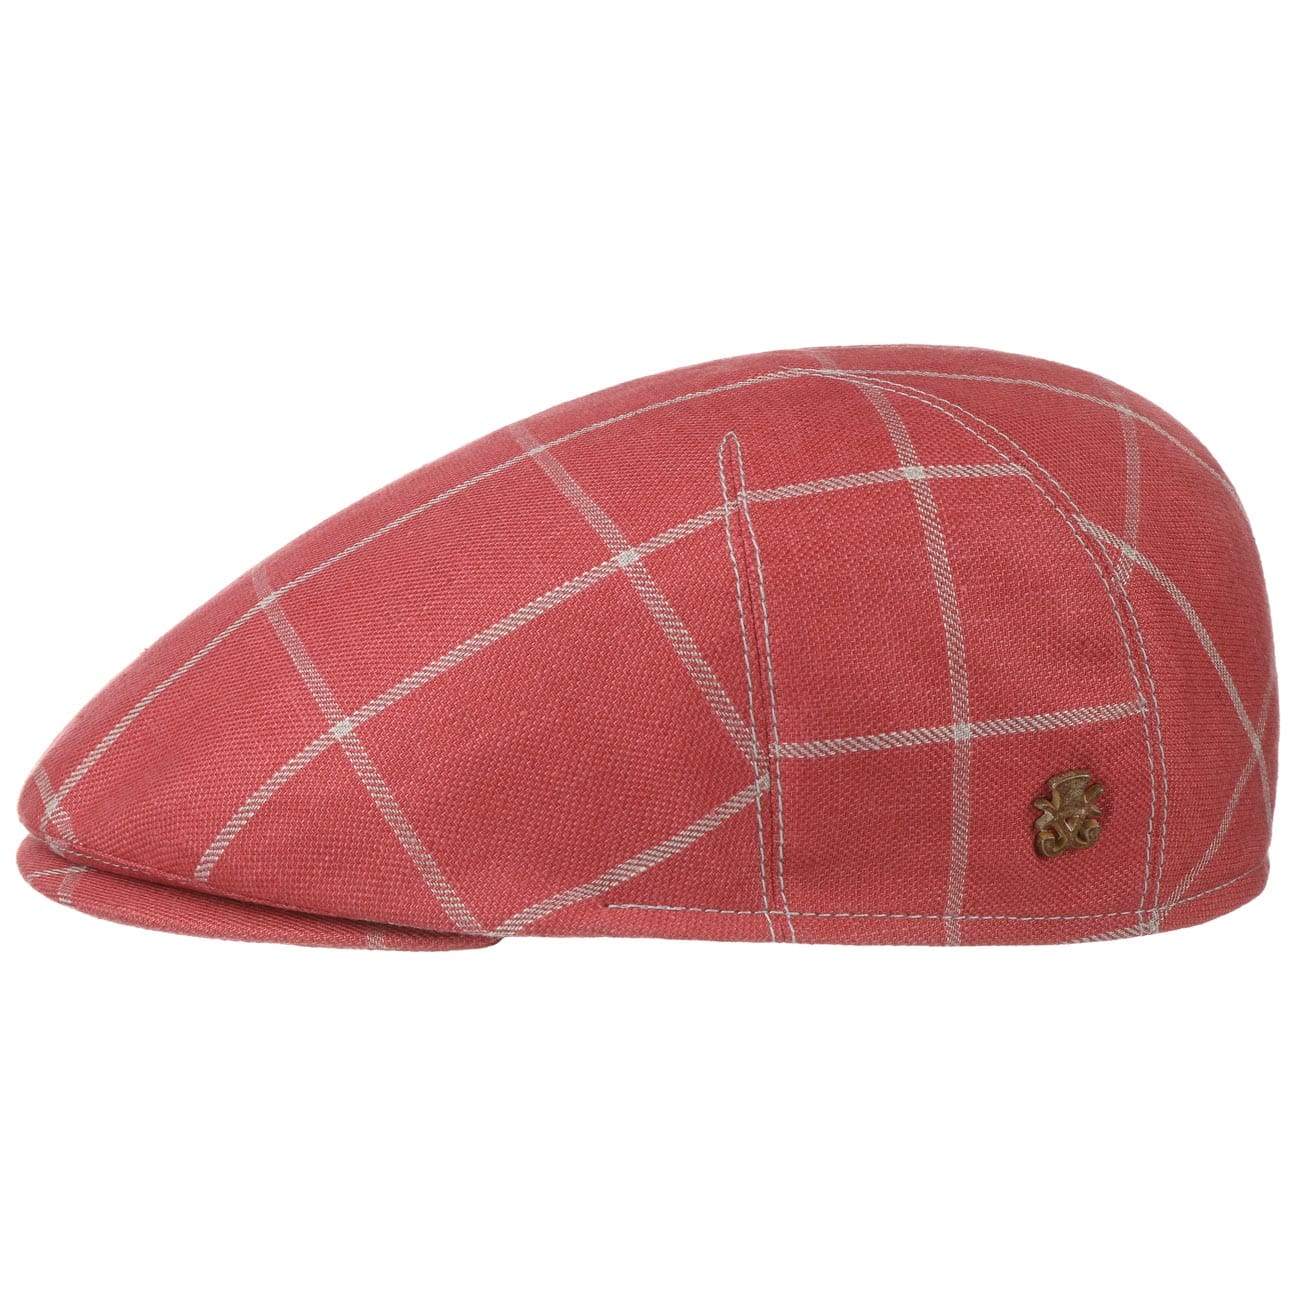 Gorra Pierce Plaid Zechbauer by Mayser  gorra de verano